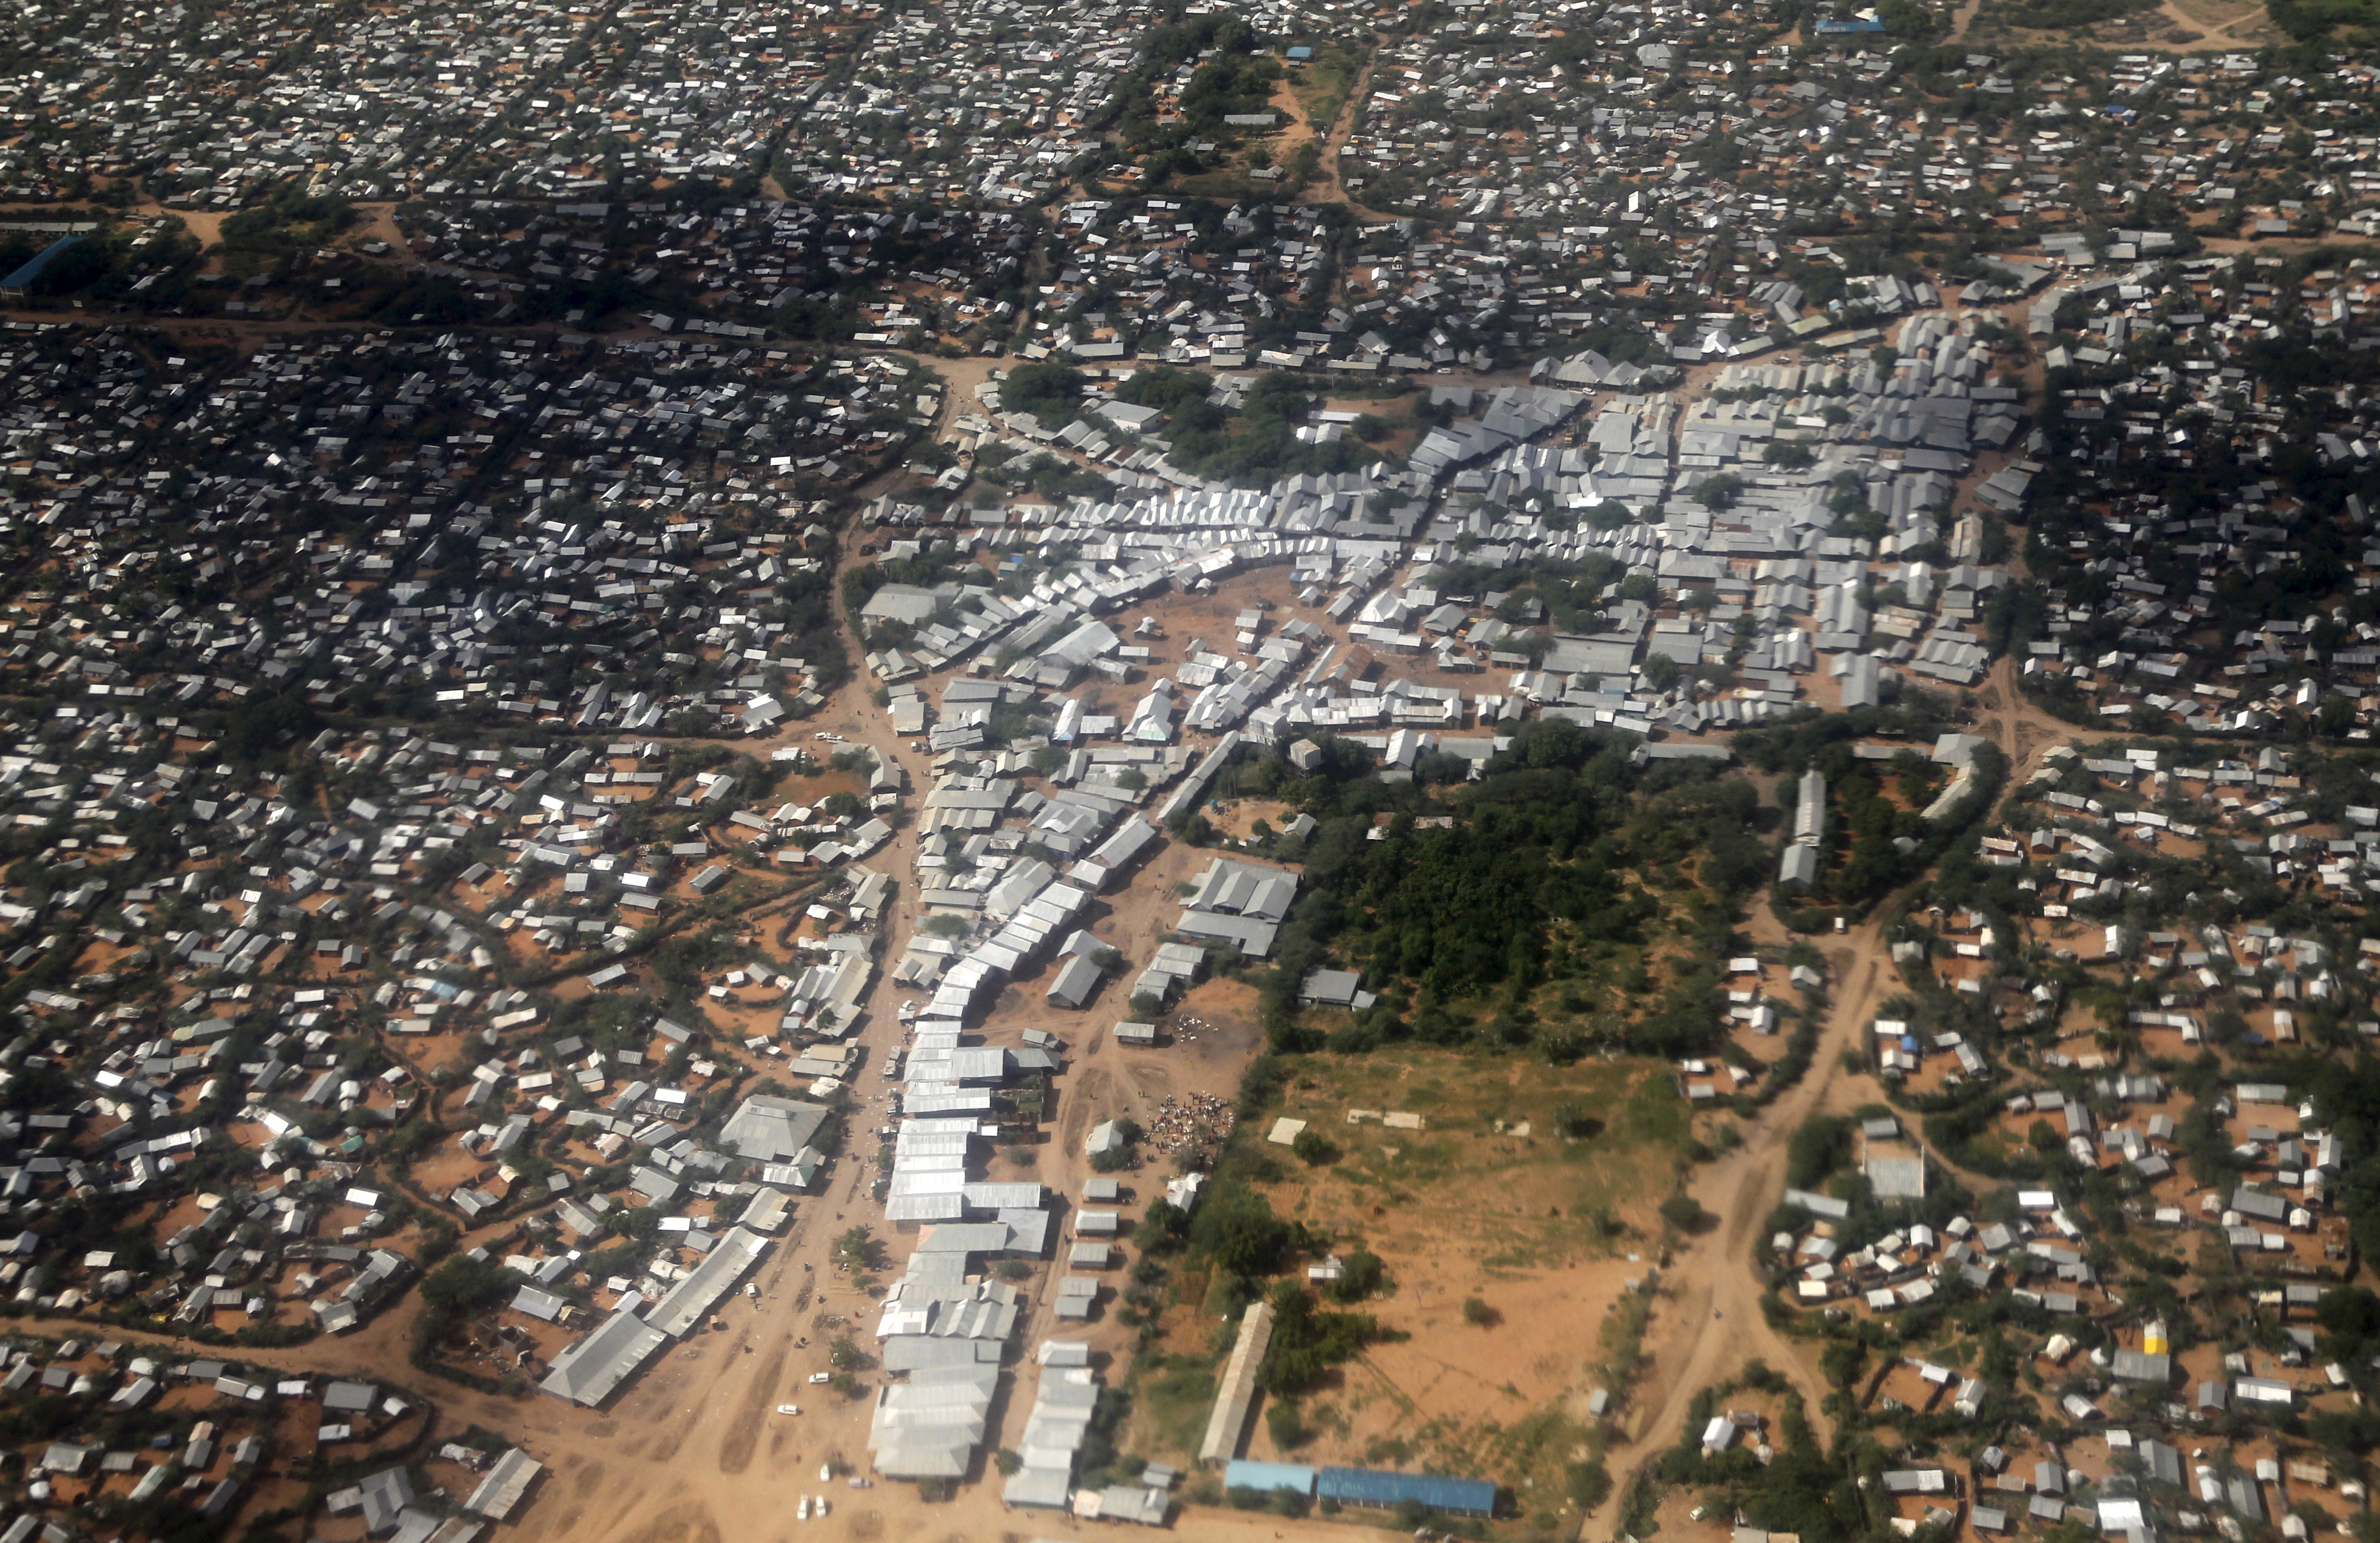 Dadaab is the largest refugee settlement in the world. It hosts about 350,000 refugees in five separate camps. About 95 percent of the inhabitants are Somali. Photo by Thomas Mukoya/Reuters